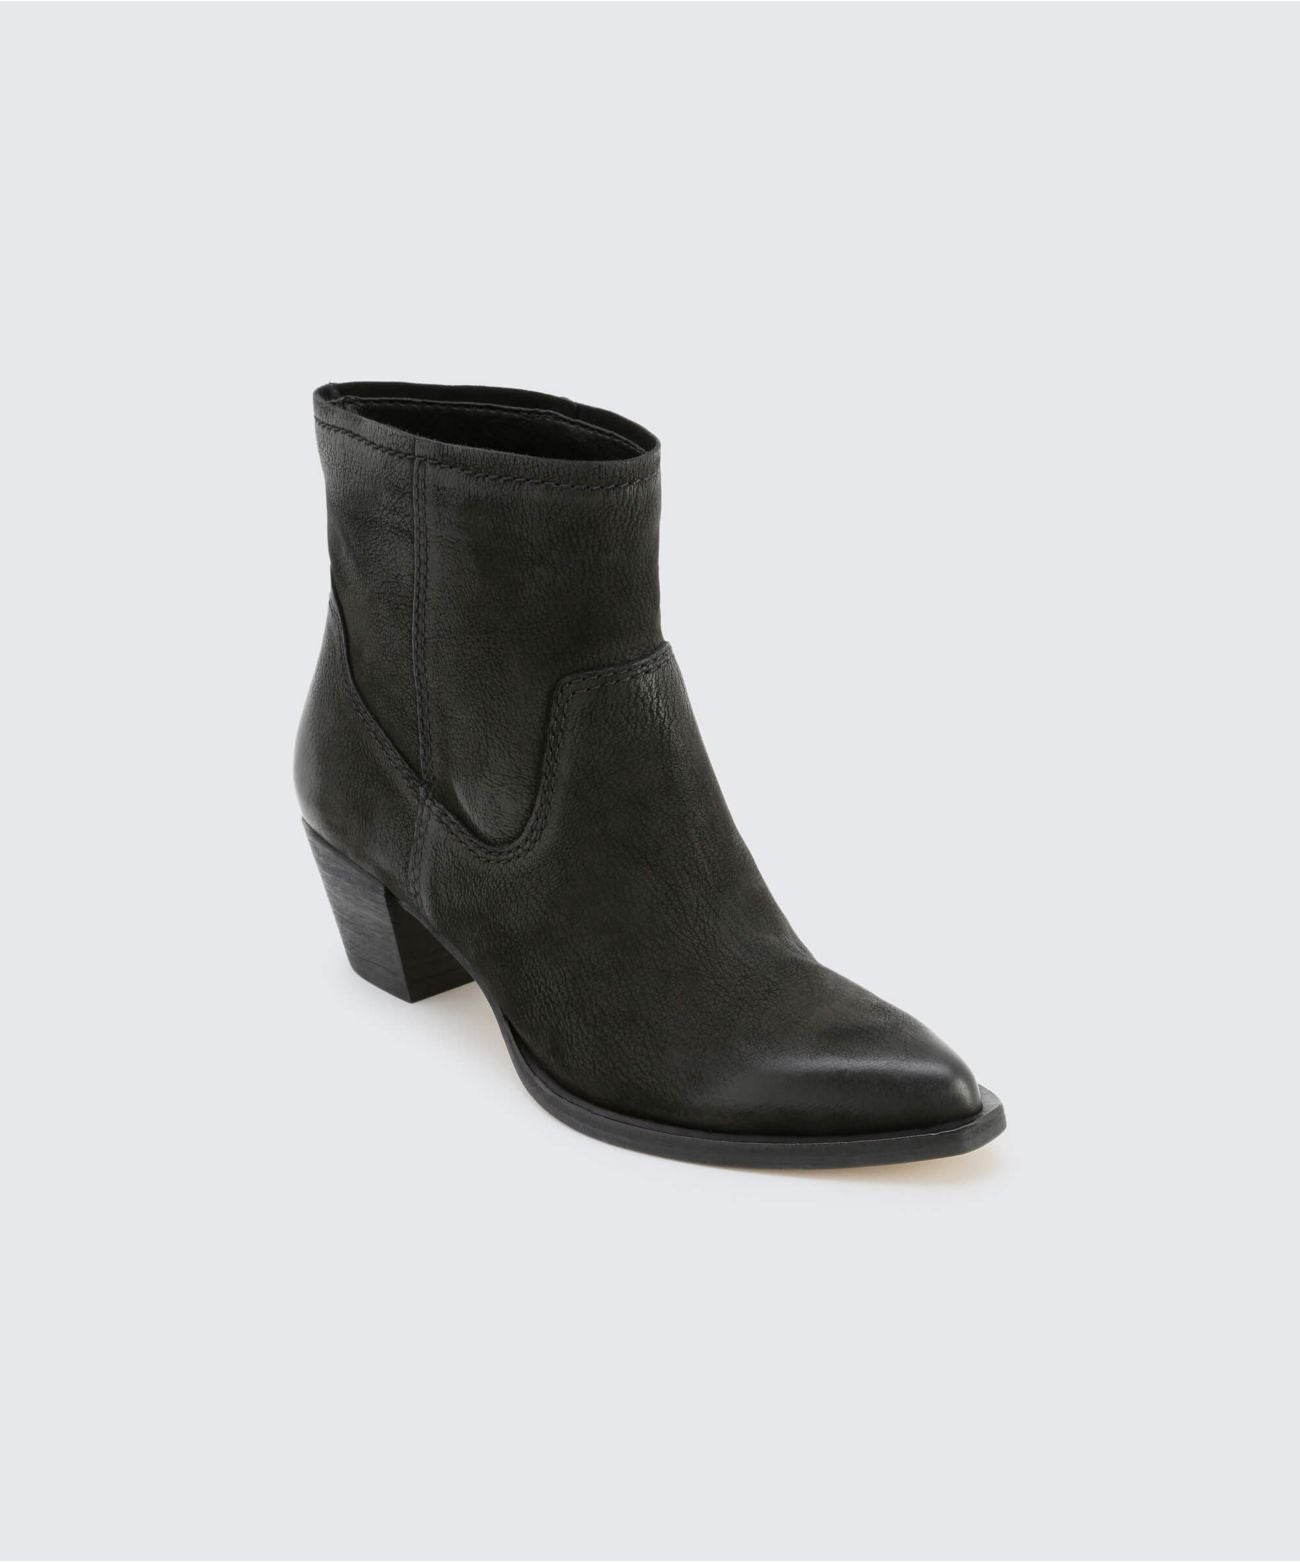 254abbb8b7 KODI BOOTIES IN BLACK – Dolce Vita